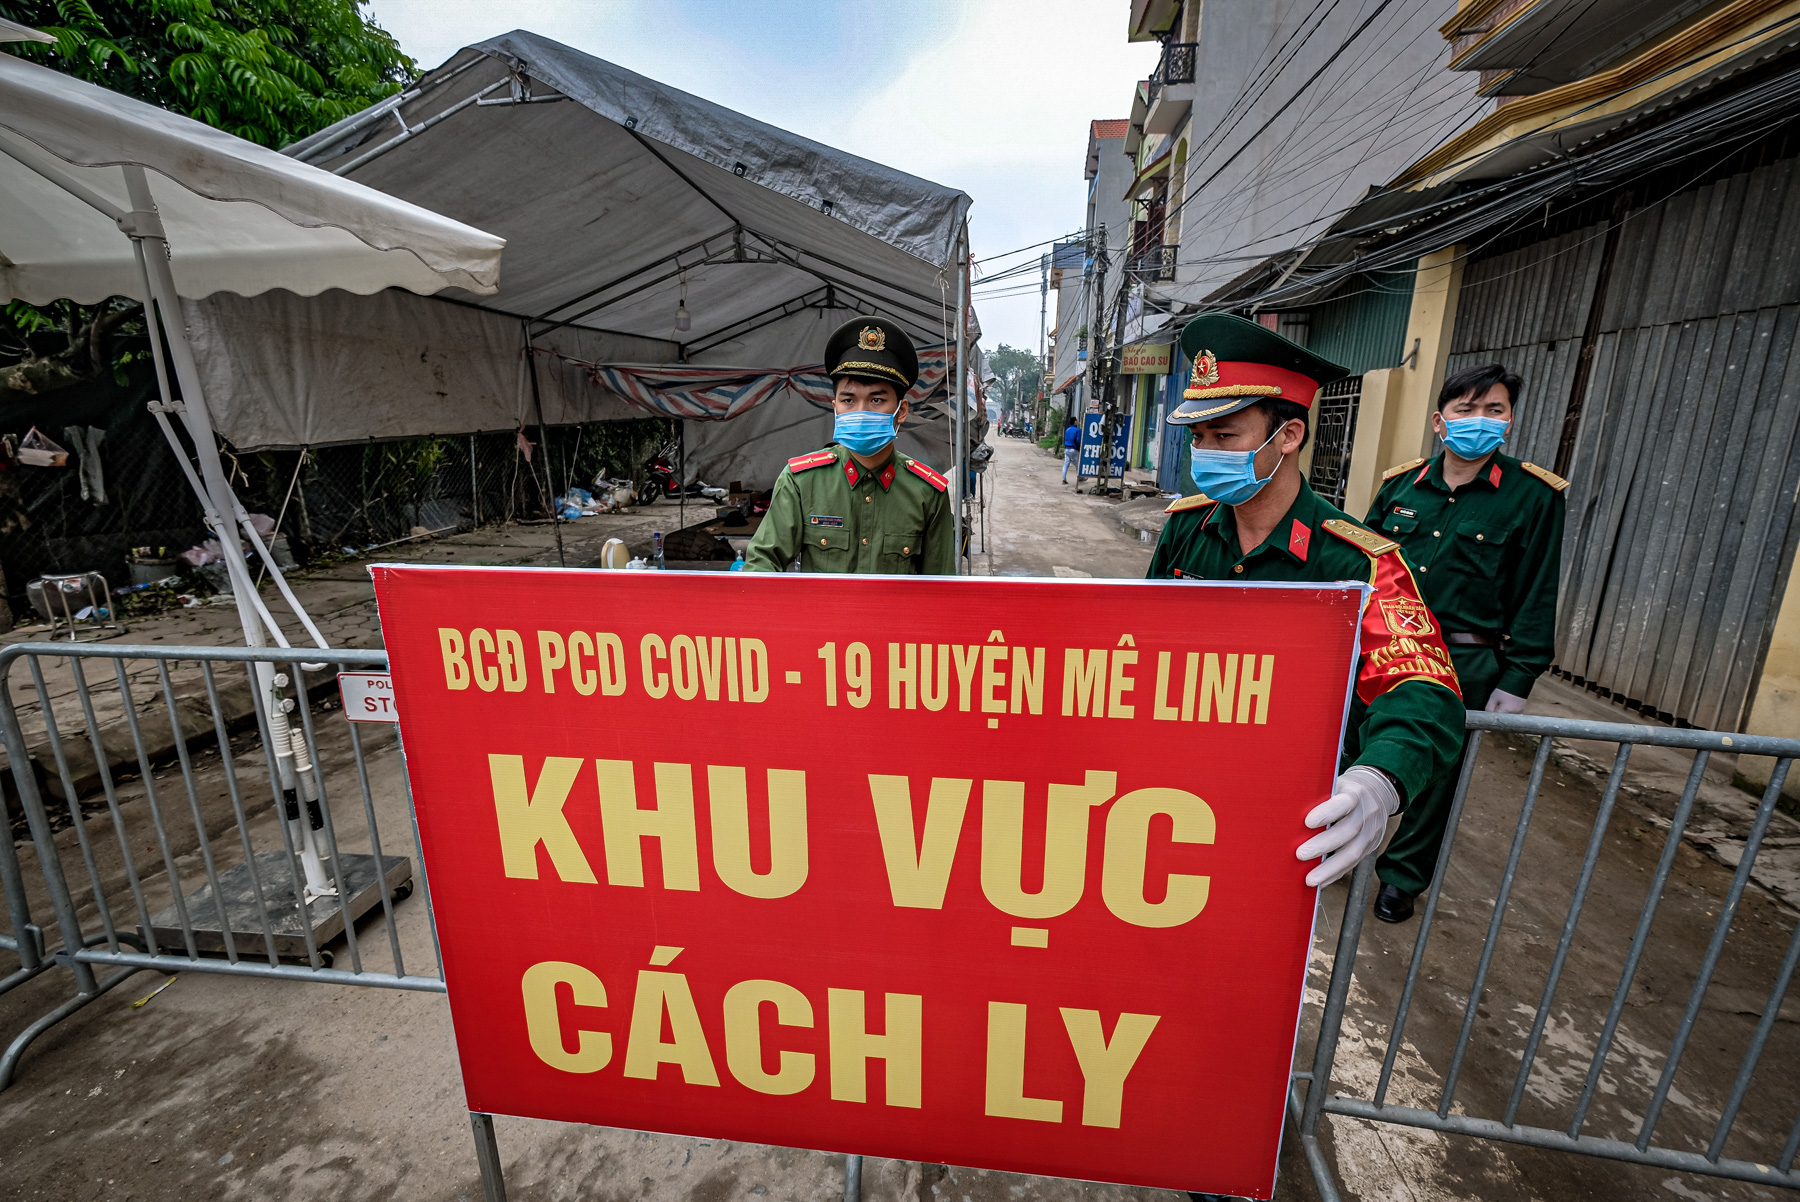 Over 100 in contact with Samsung employee sickened by COVID-19 in Vietnam